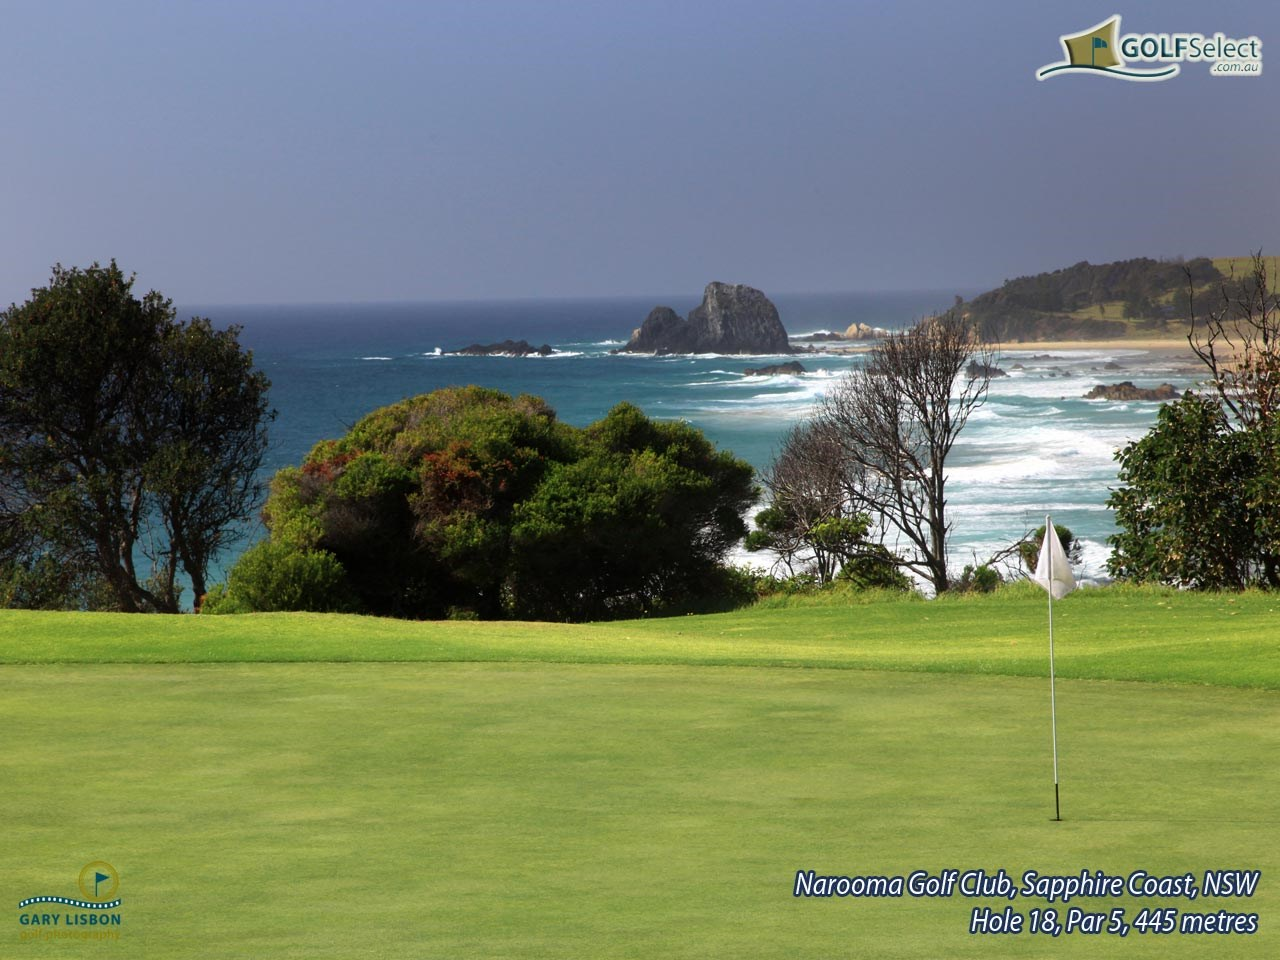 Narooma Golf Club Hole 18, Par 5, 445 metres